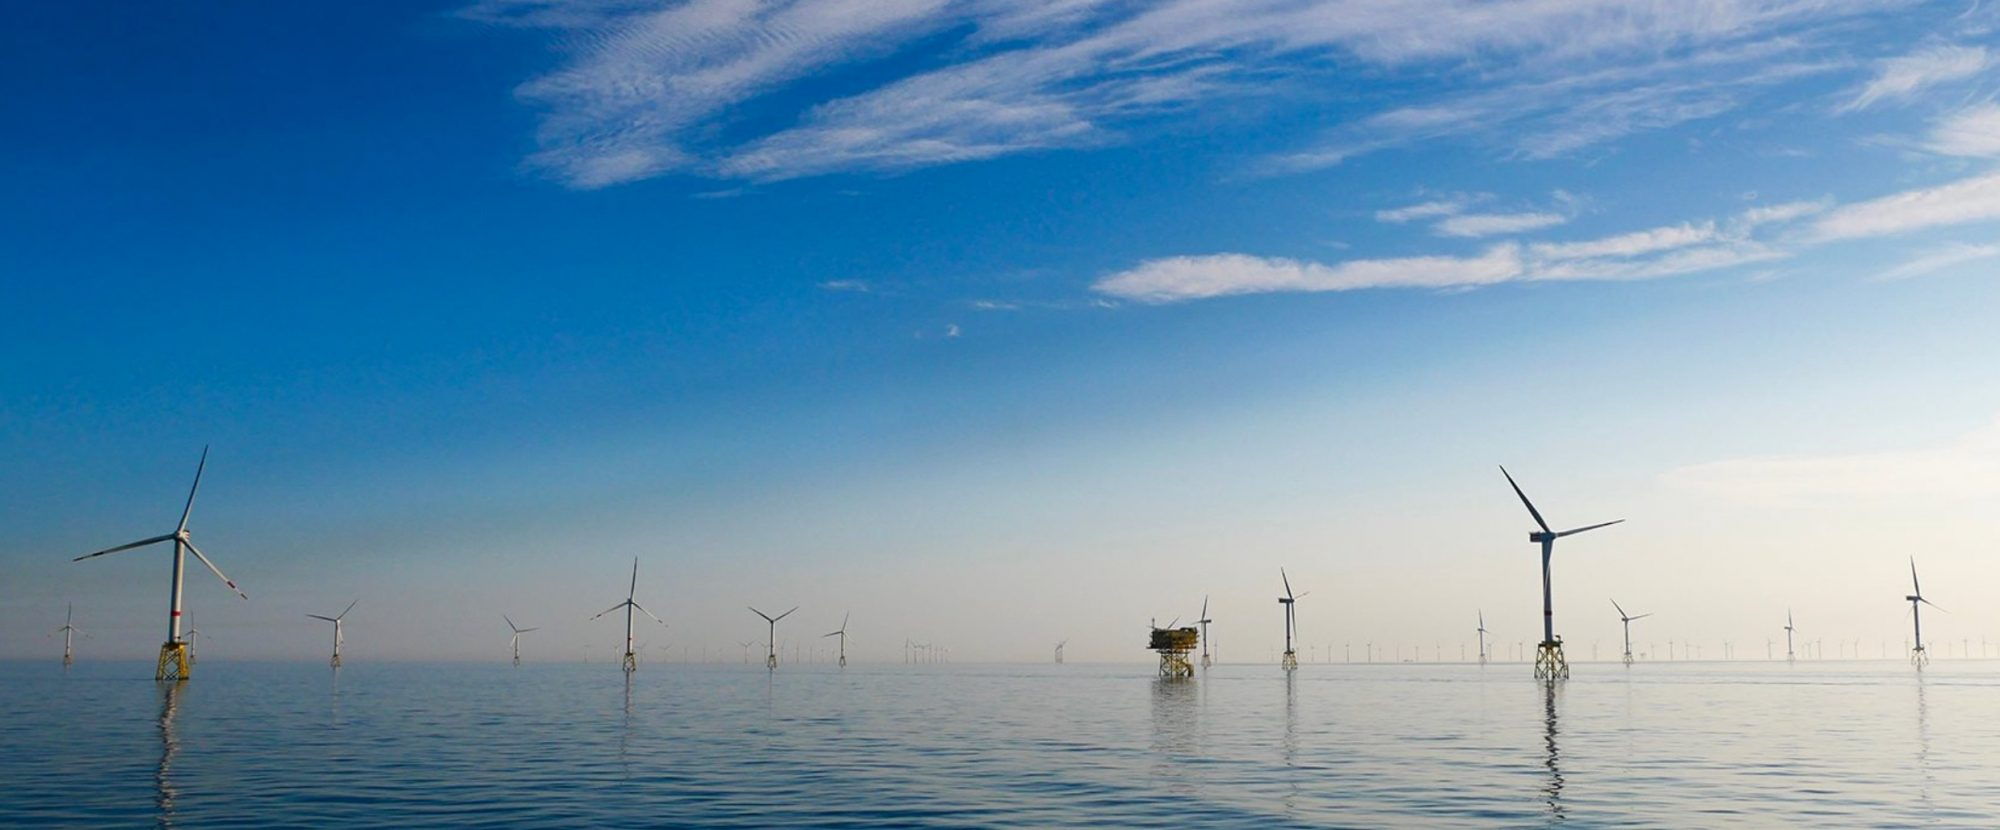 Mott MacDonald appointed to Europe's largest hydrogen project